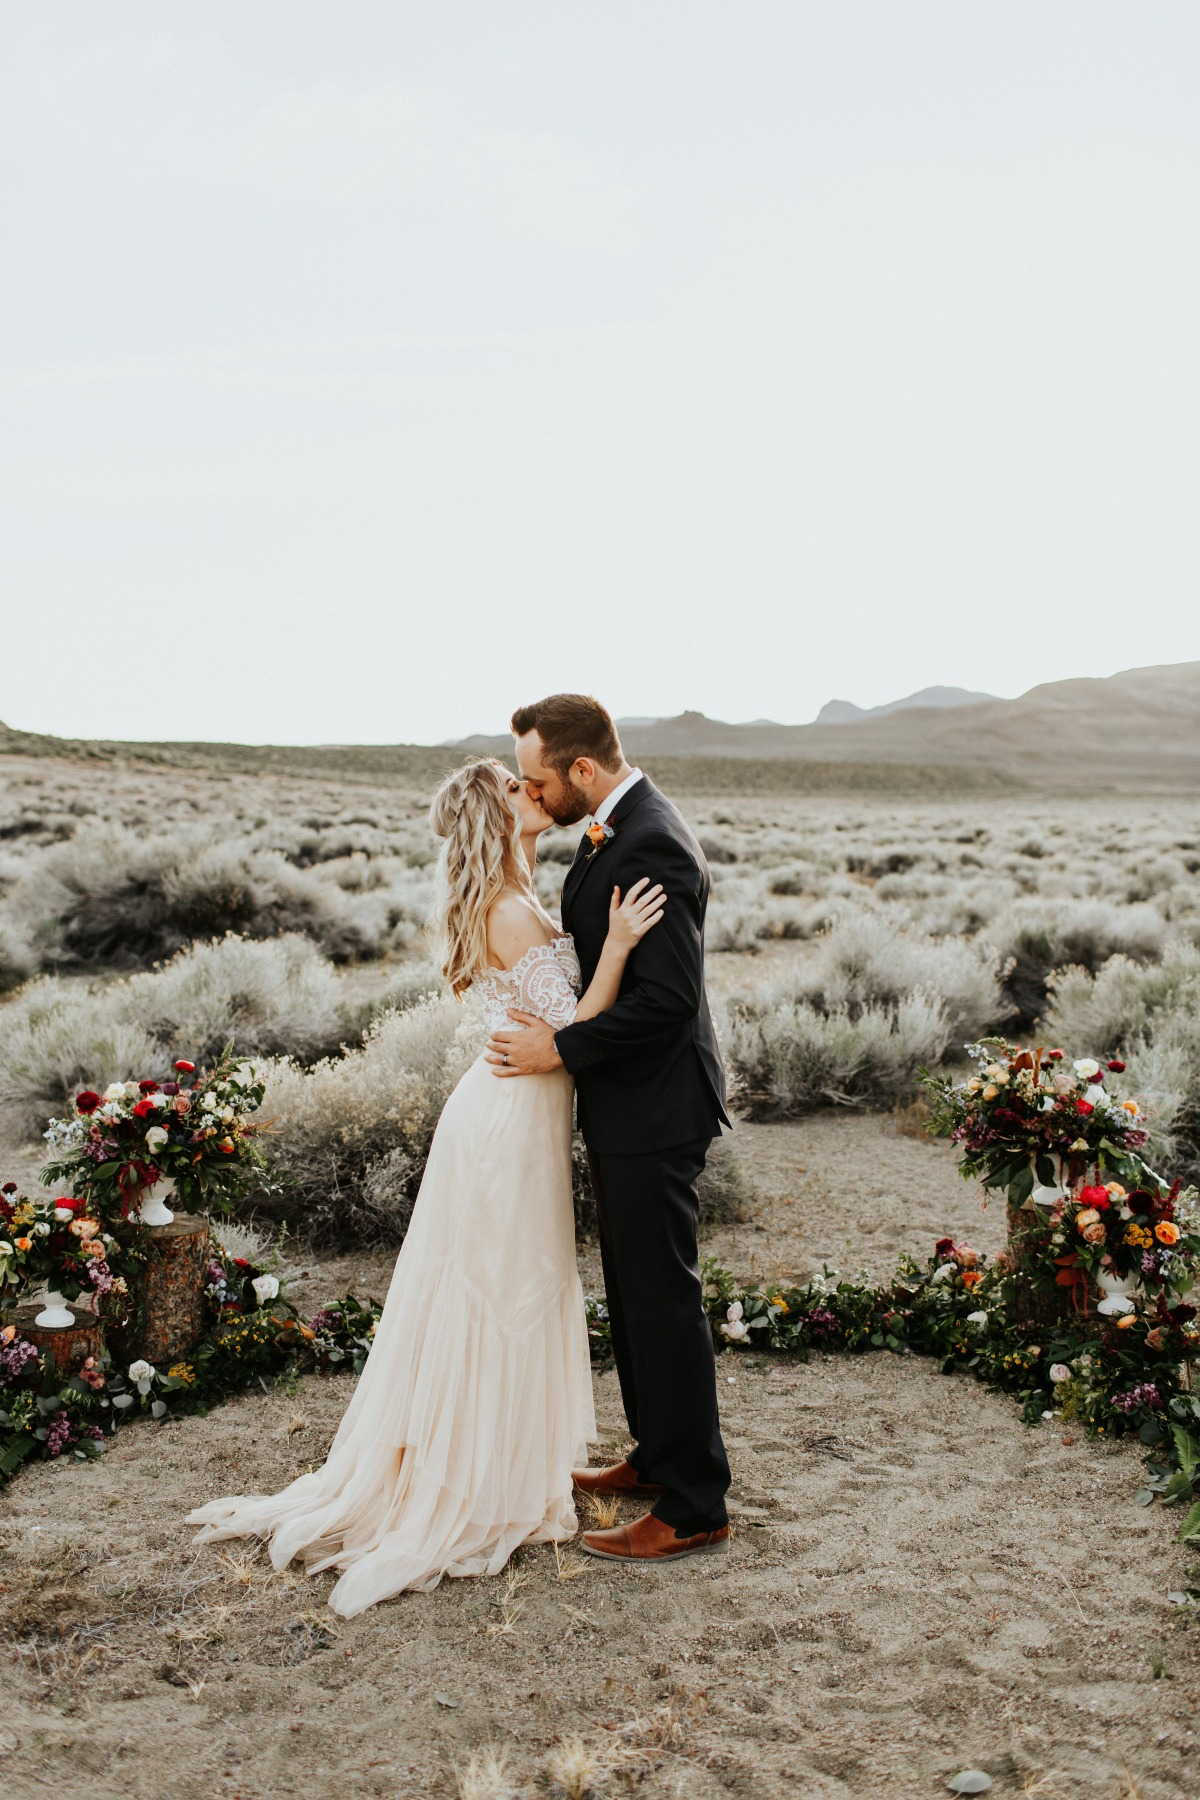 Desert elopement shoot